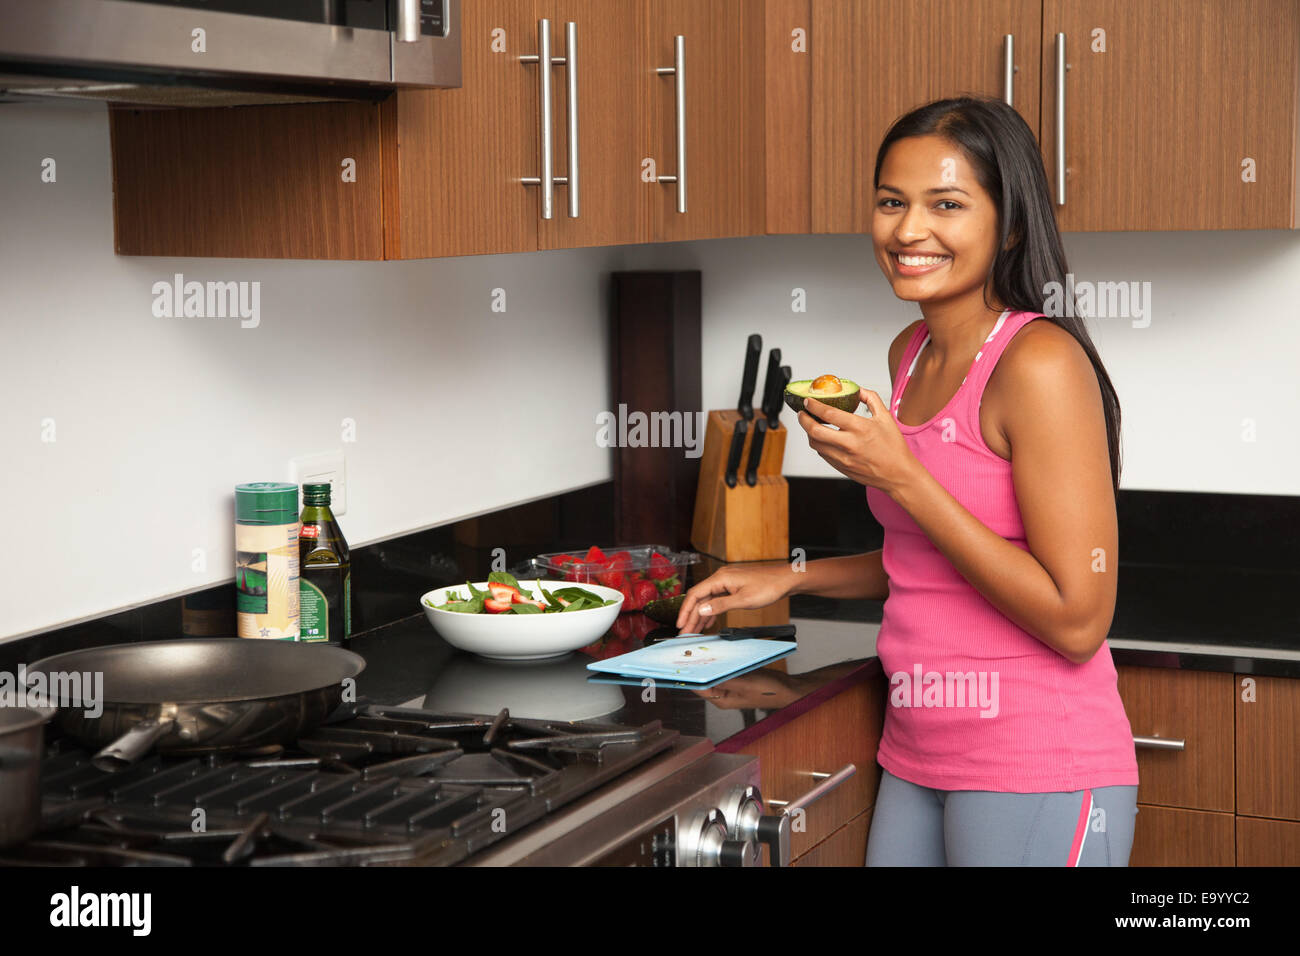 Woman preparing salad in kitchen - Stock Image